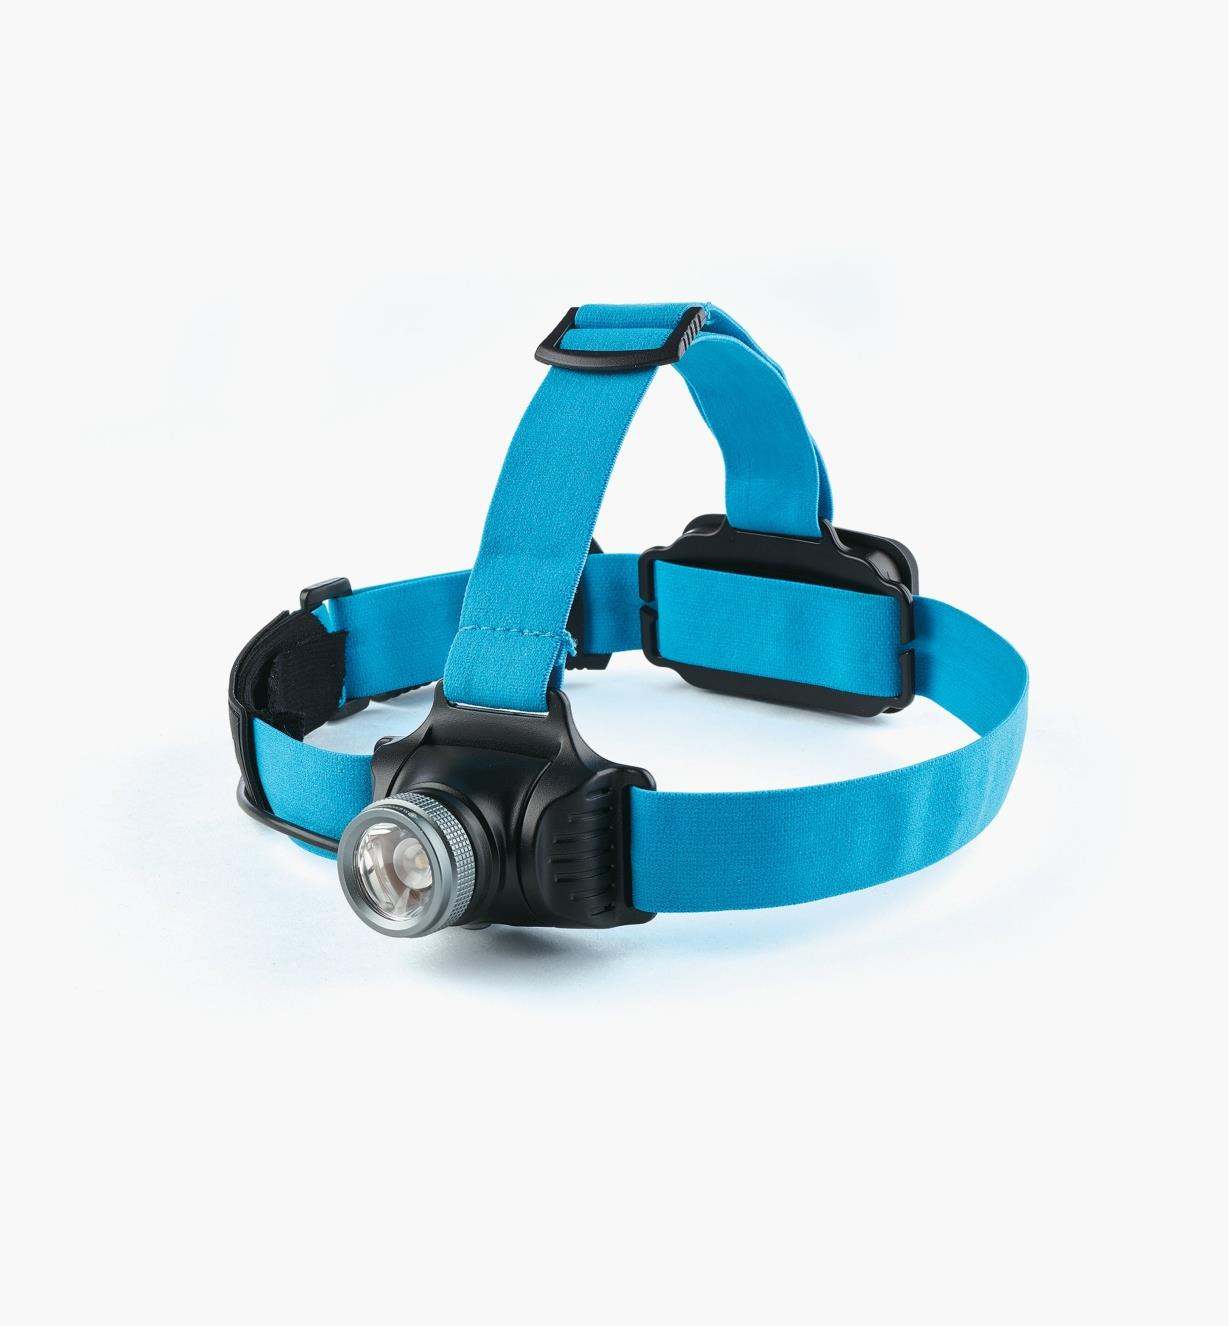 45K1996 - Suprabeam Headlamp, V3air Rechargeable